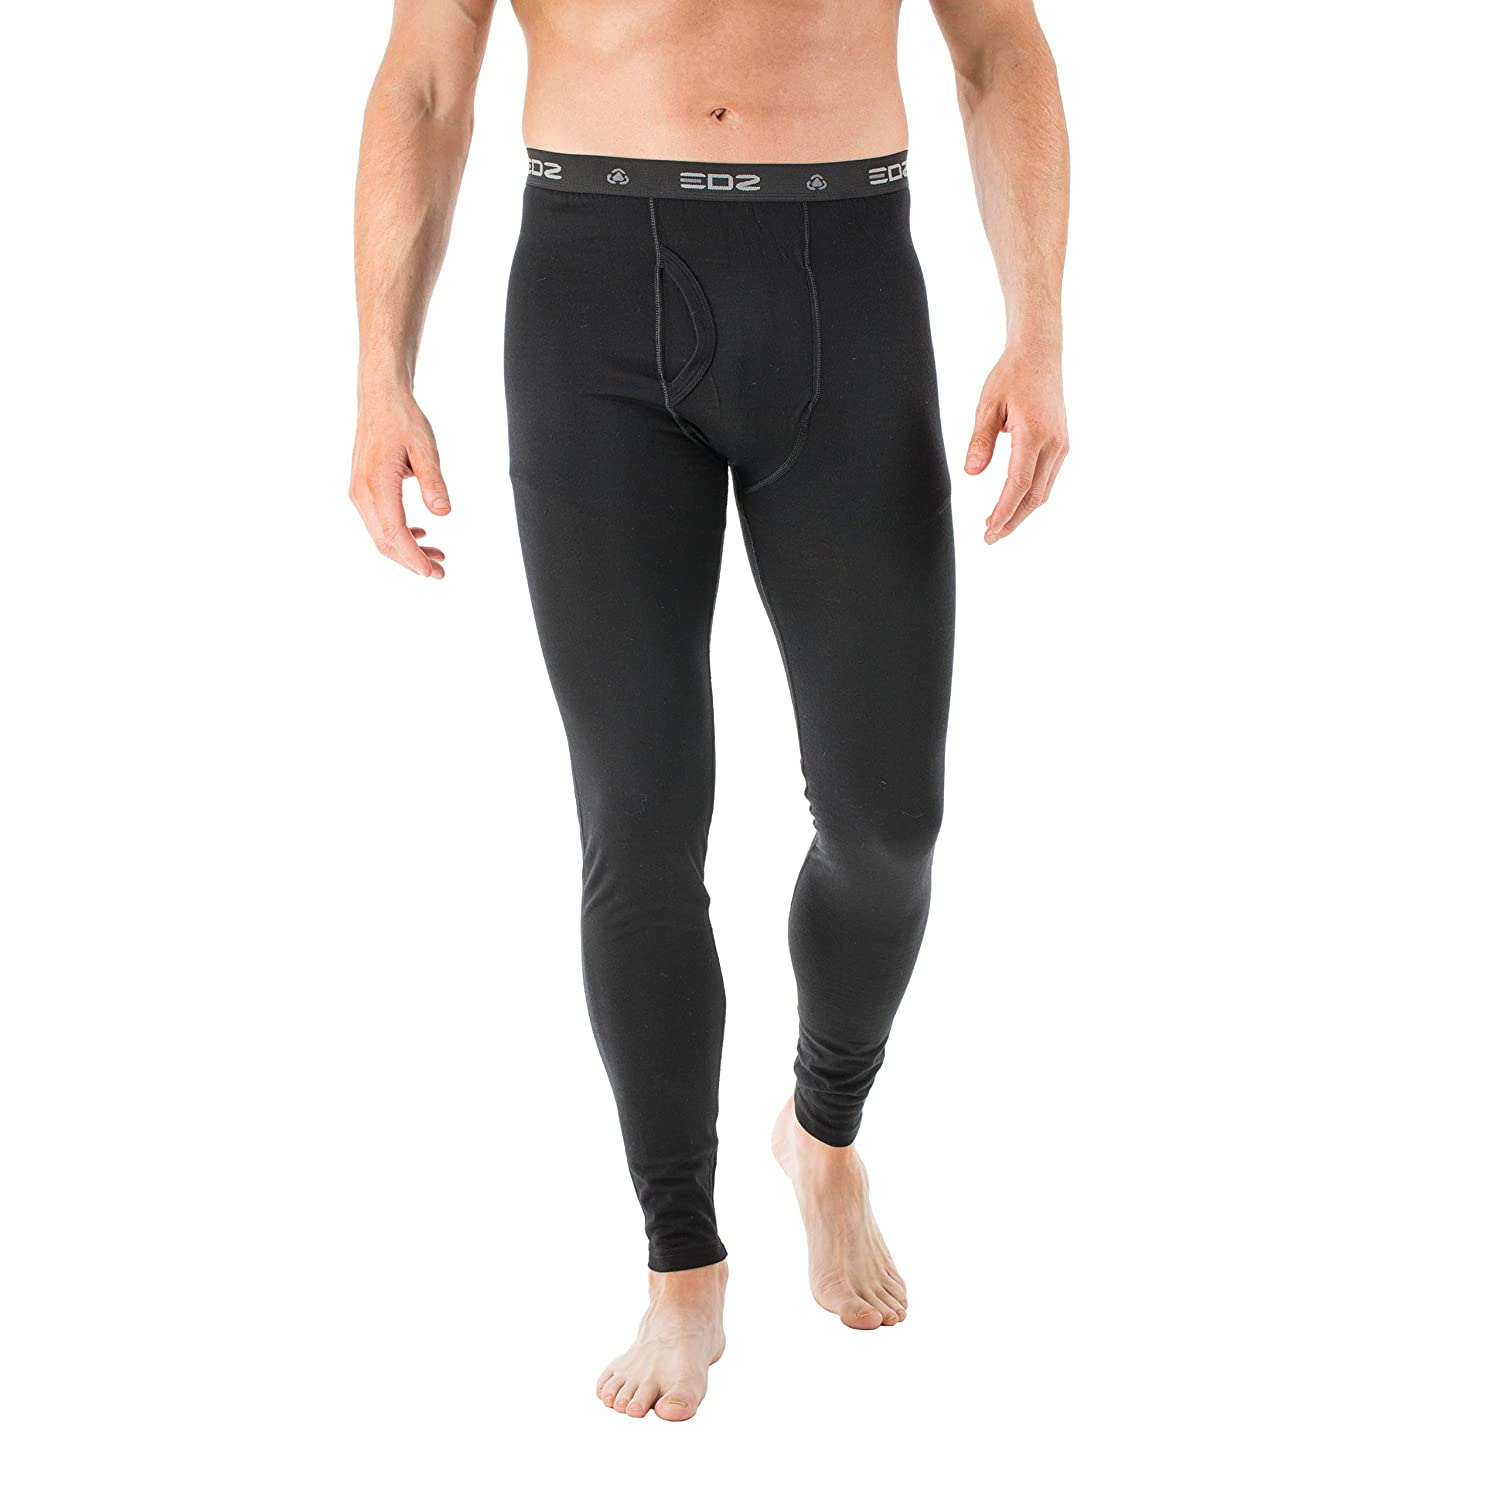 EDZ 200g Merino Wool Base Layer Leggings Graphite